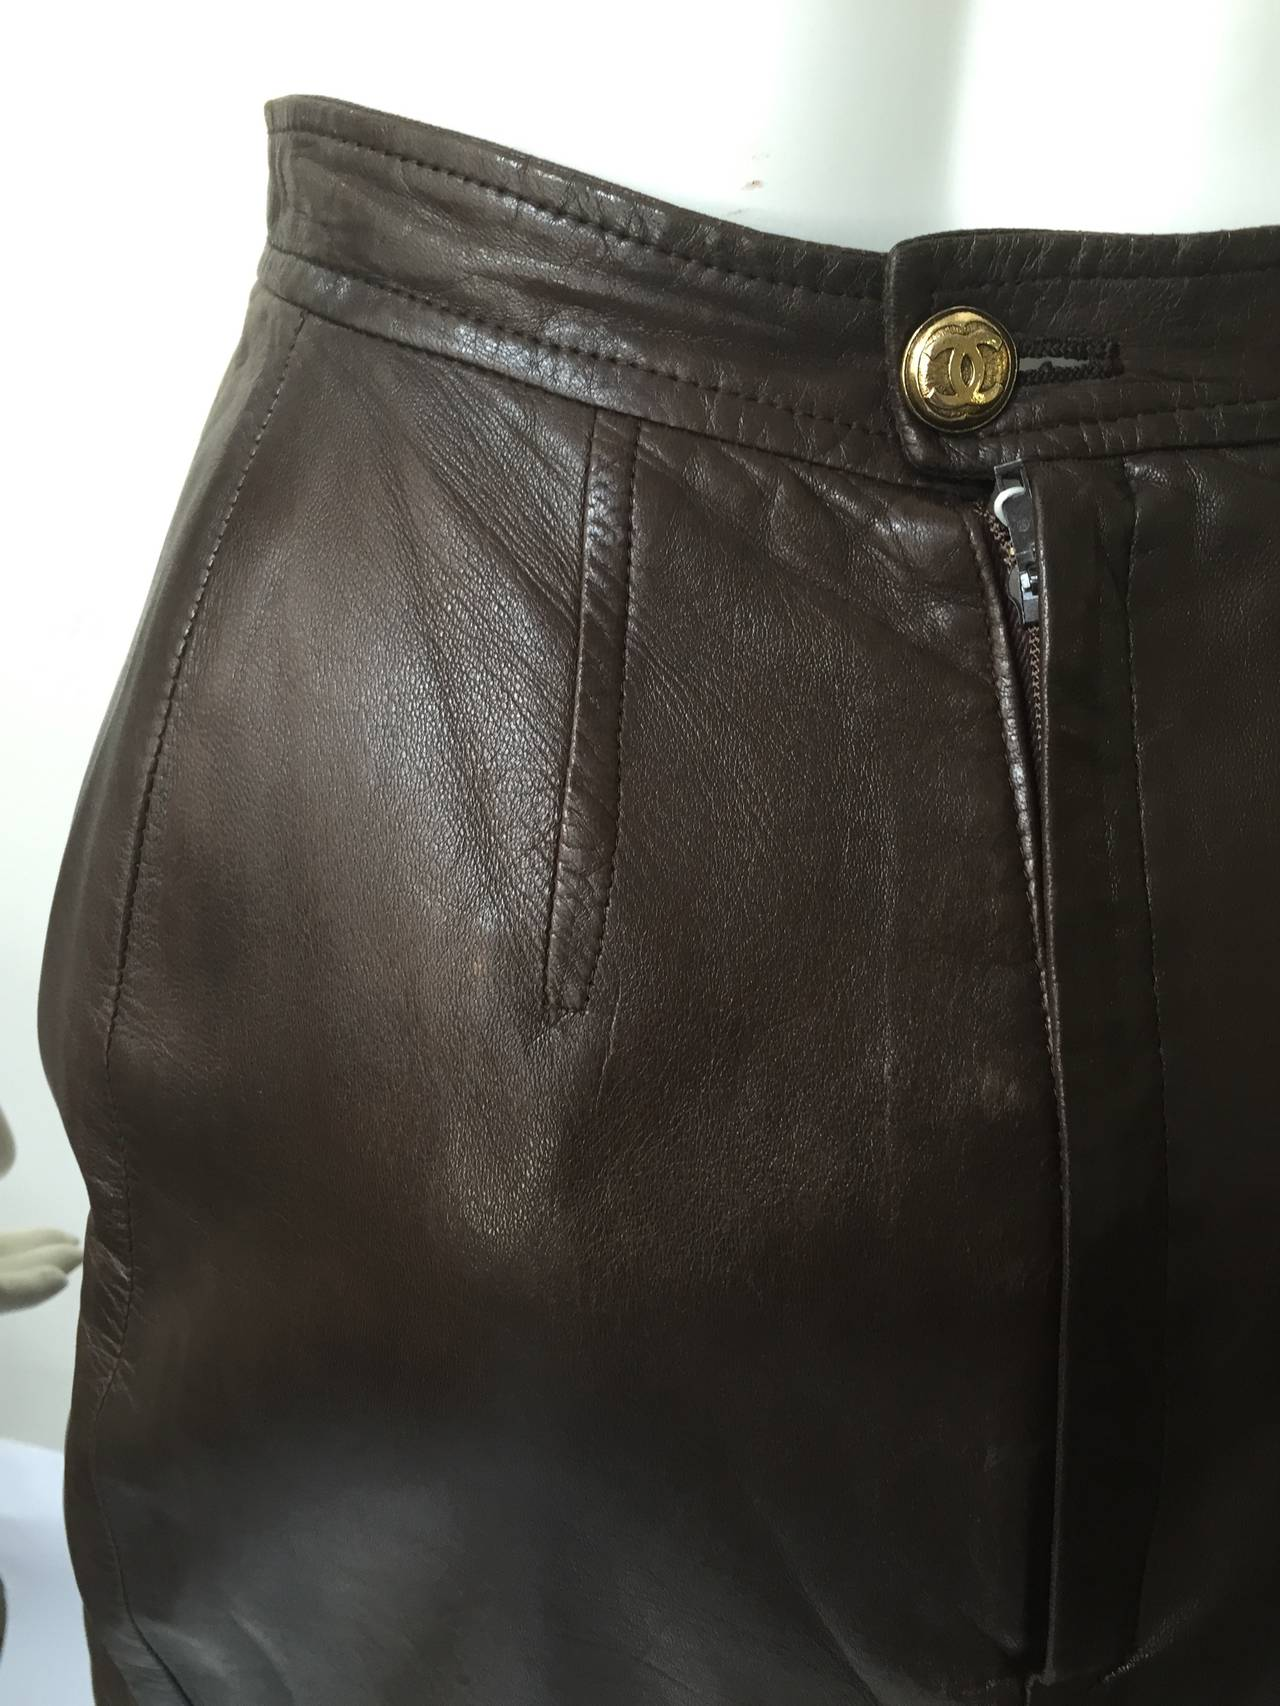 Chanel 80s brown leather skirt size 6. 7